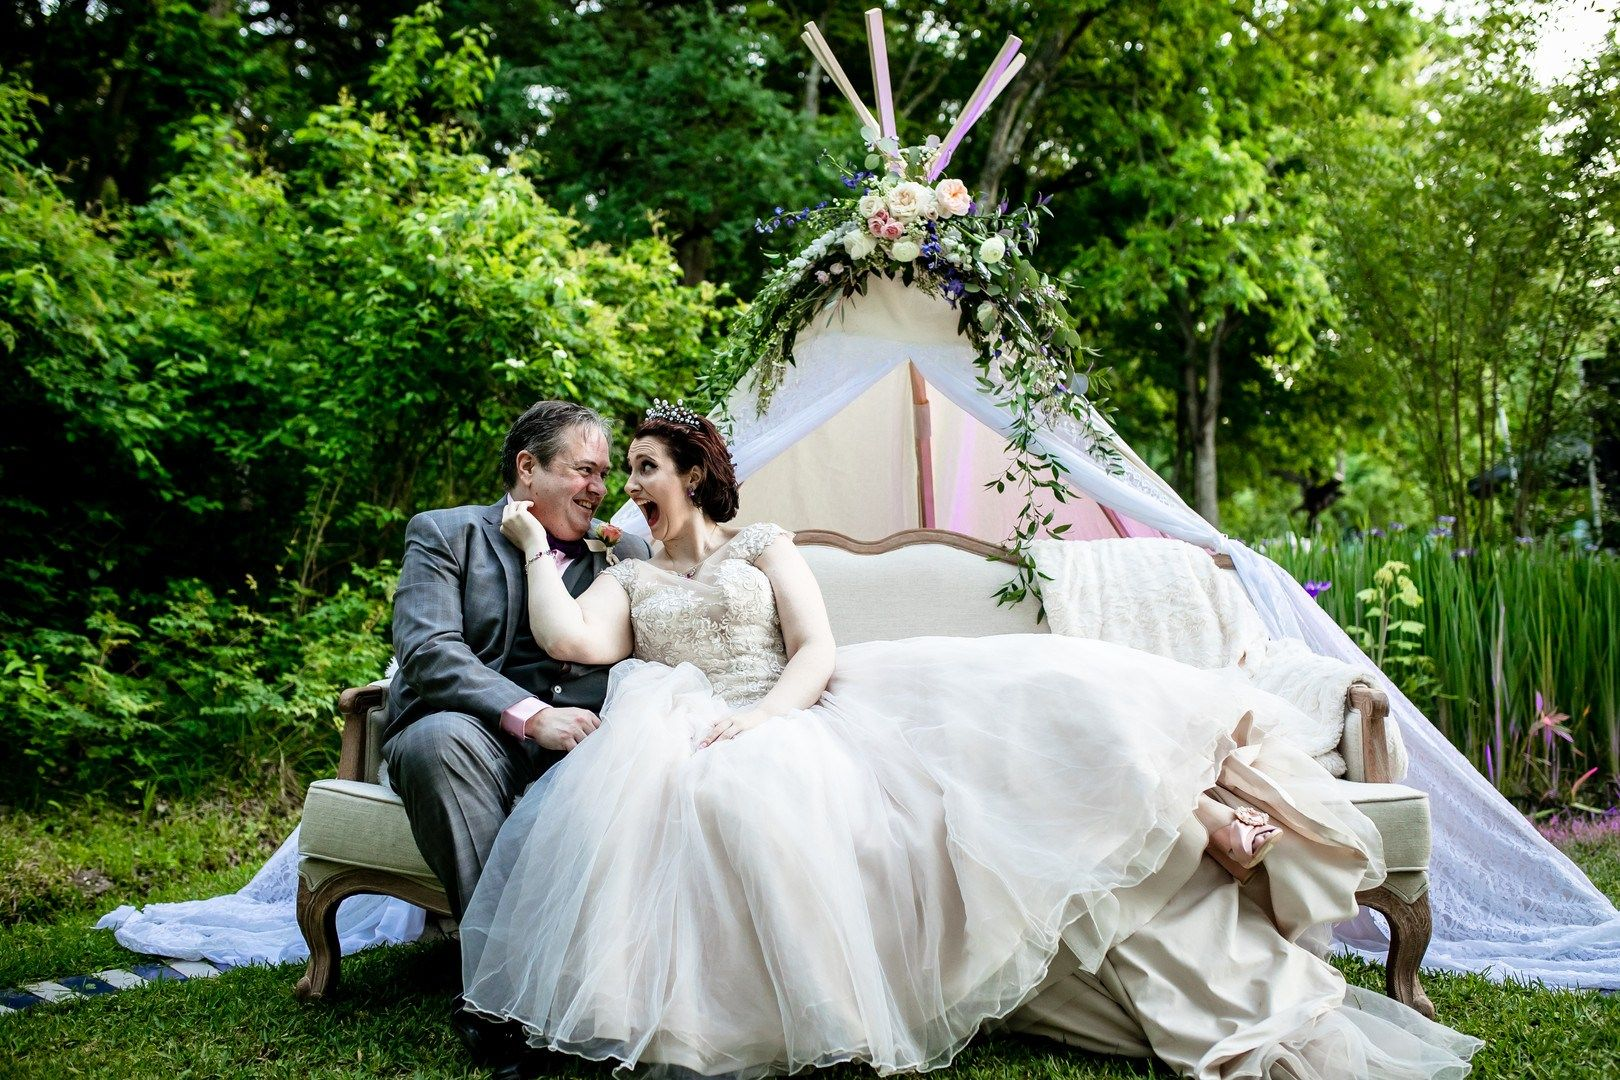 So much magic at this butterfly themed wedding in a